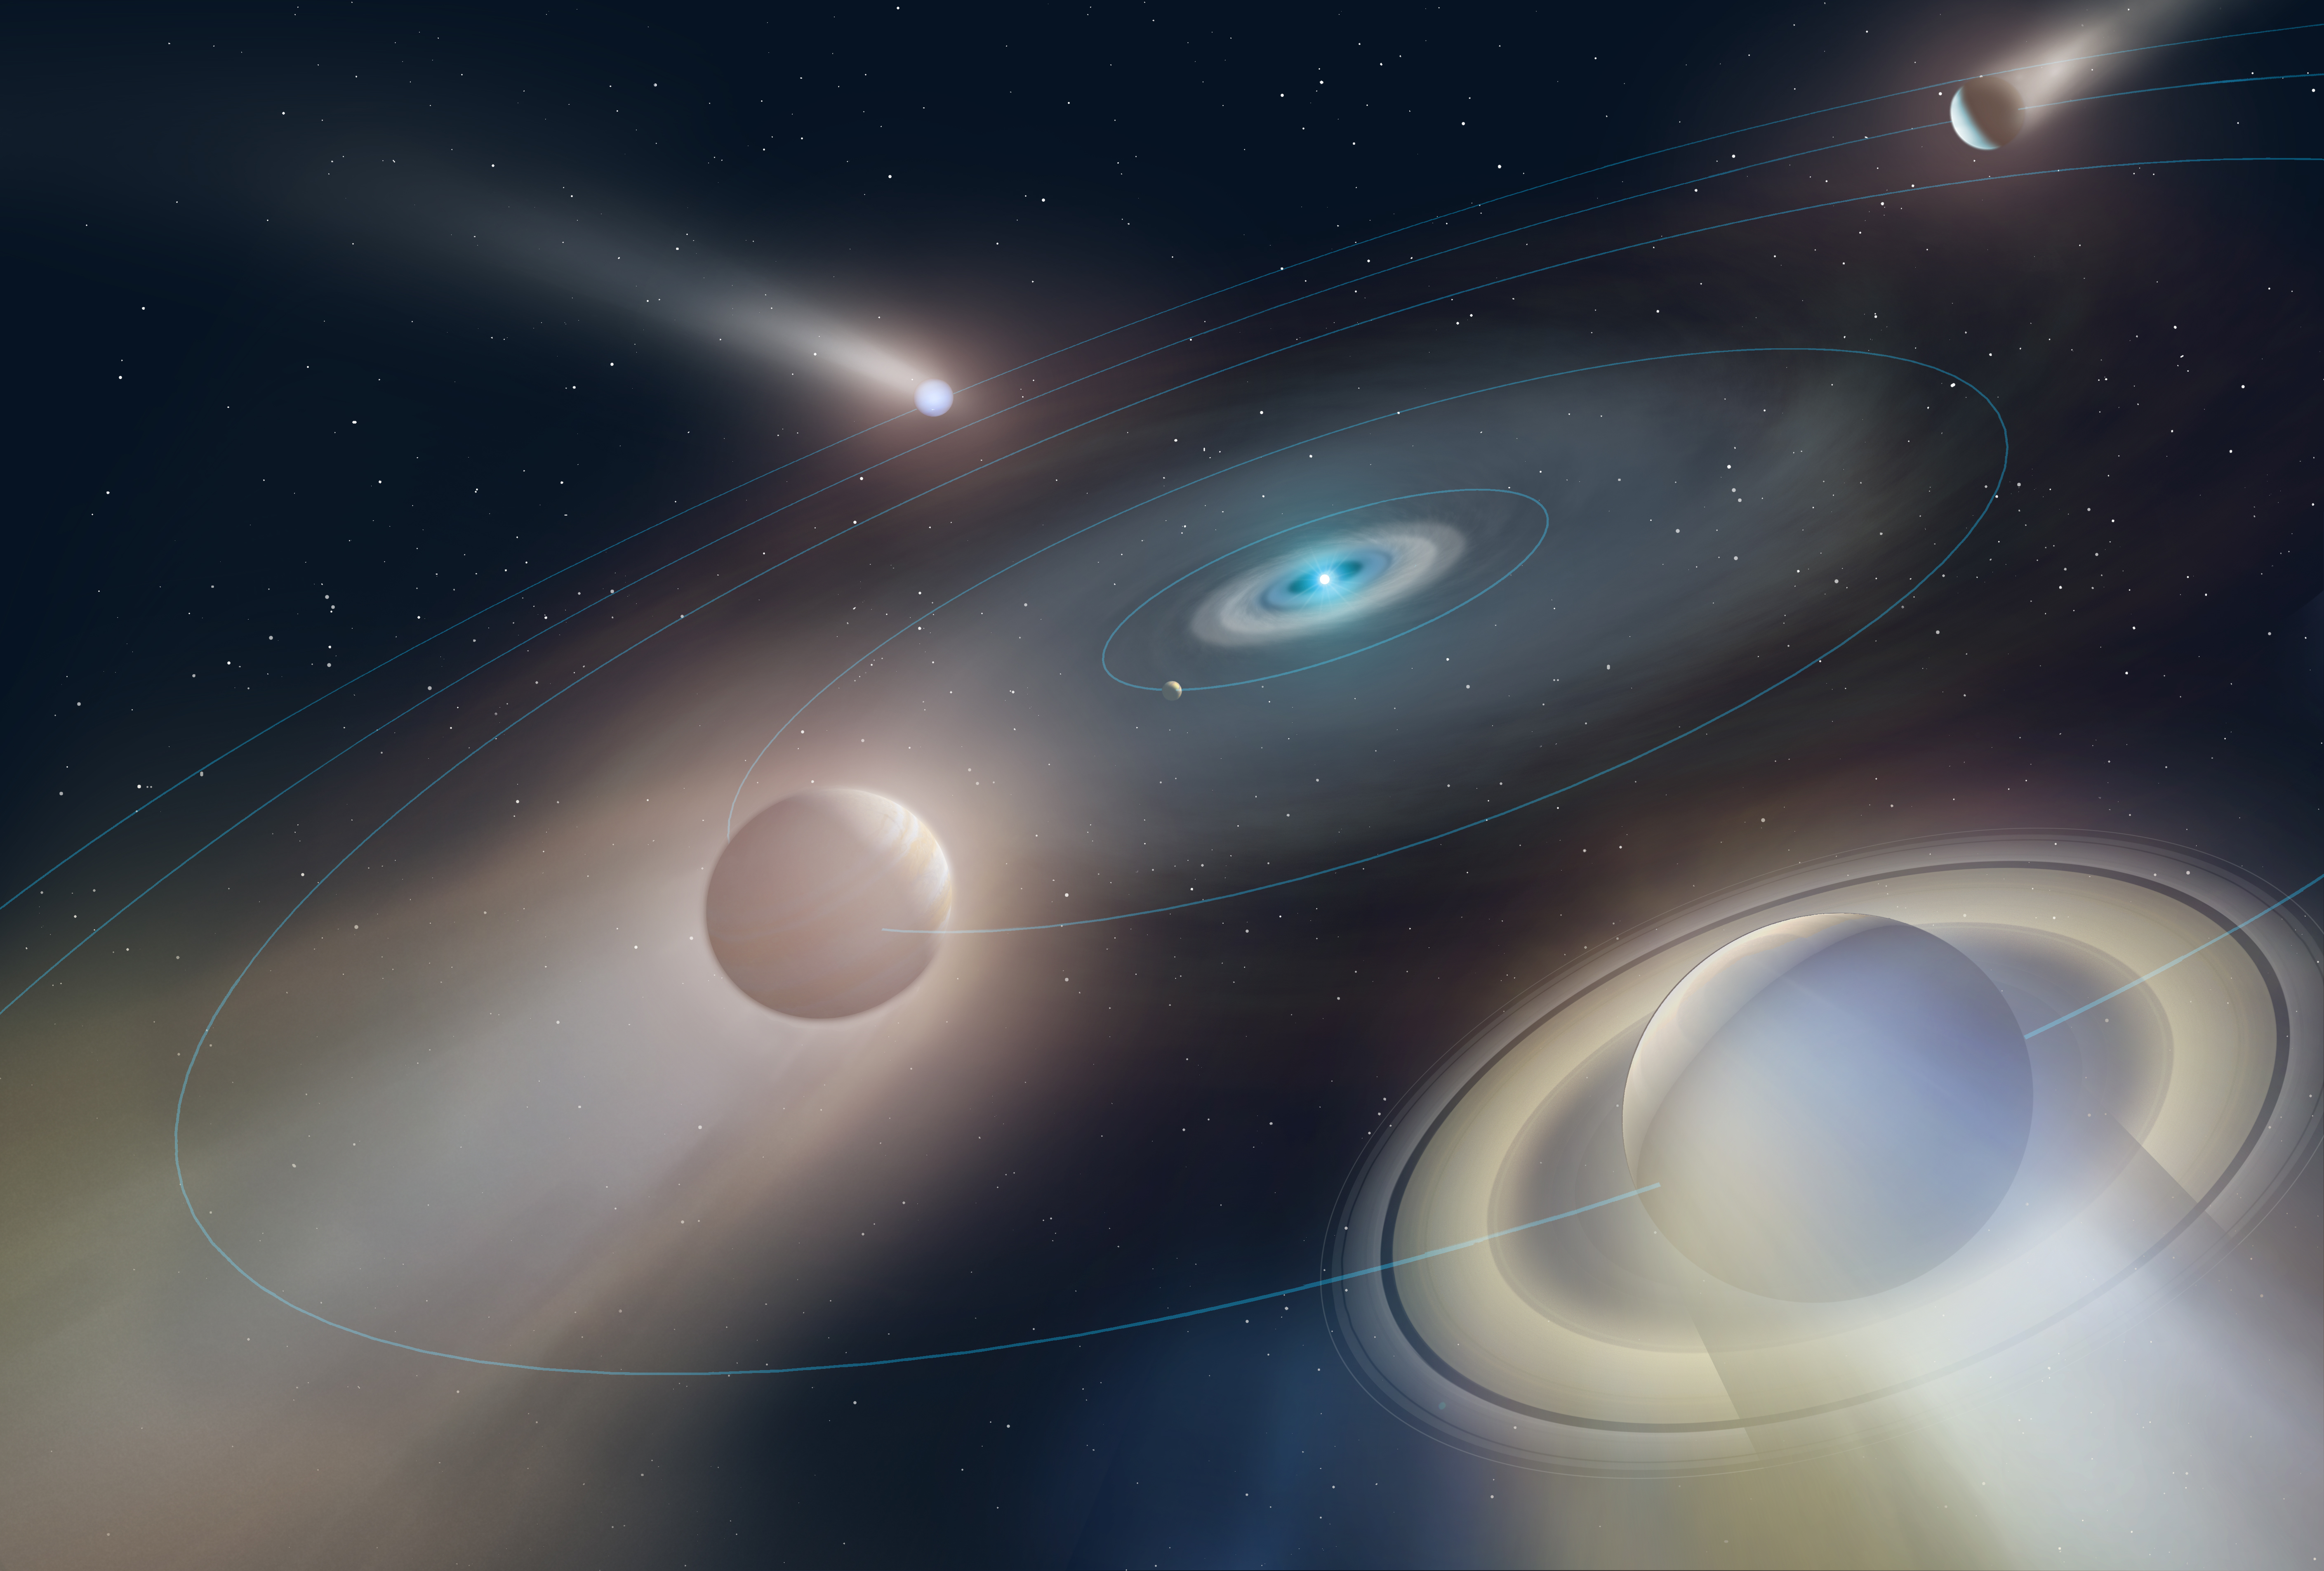 The sun sits at the center of planetary orbits, with planets around it looking as though they're fading or evaporating